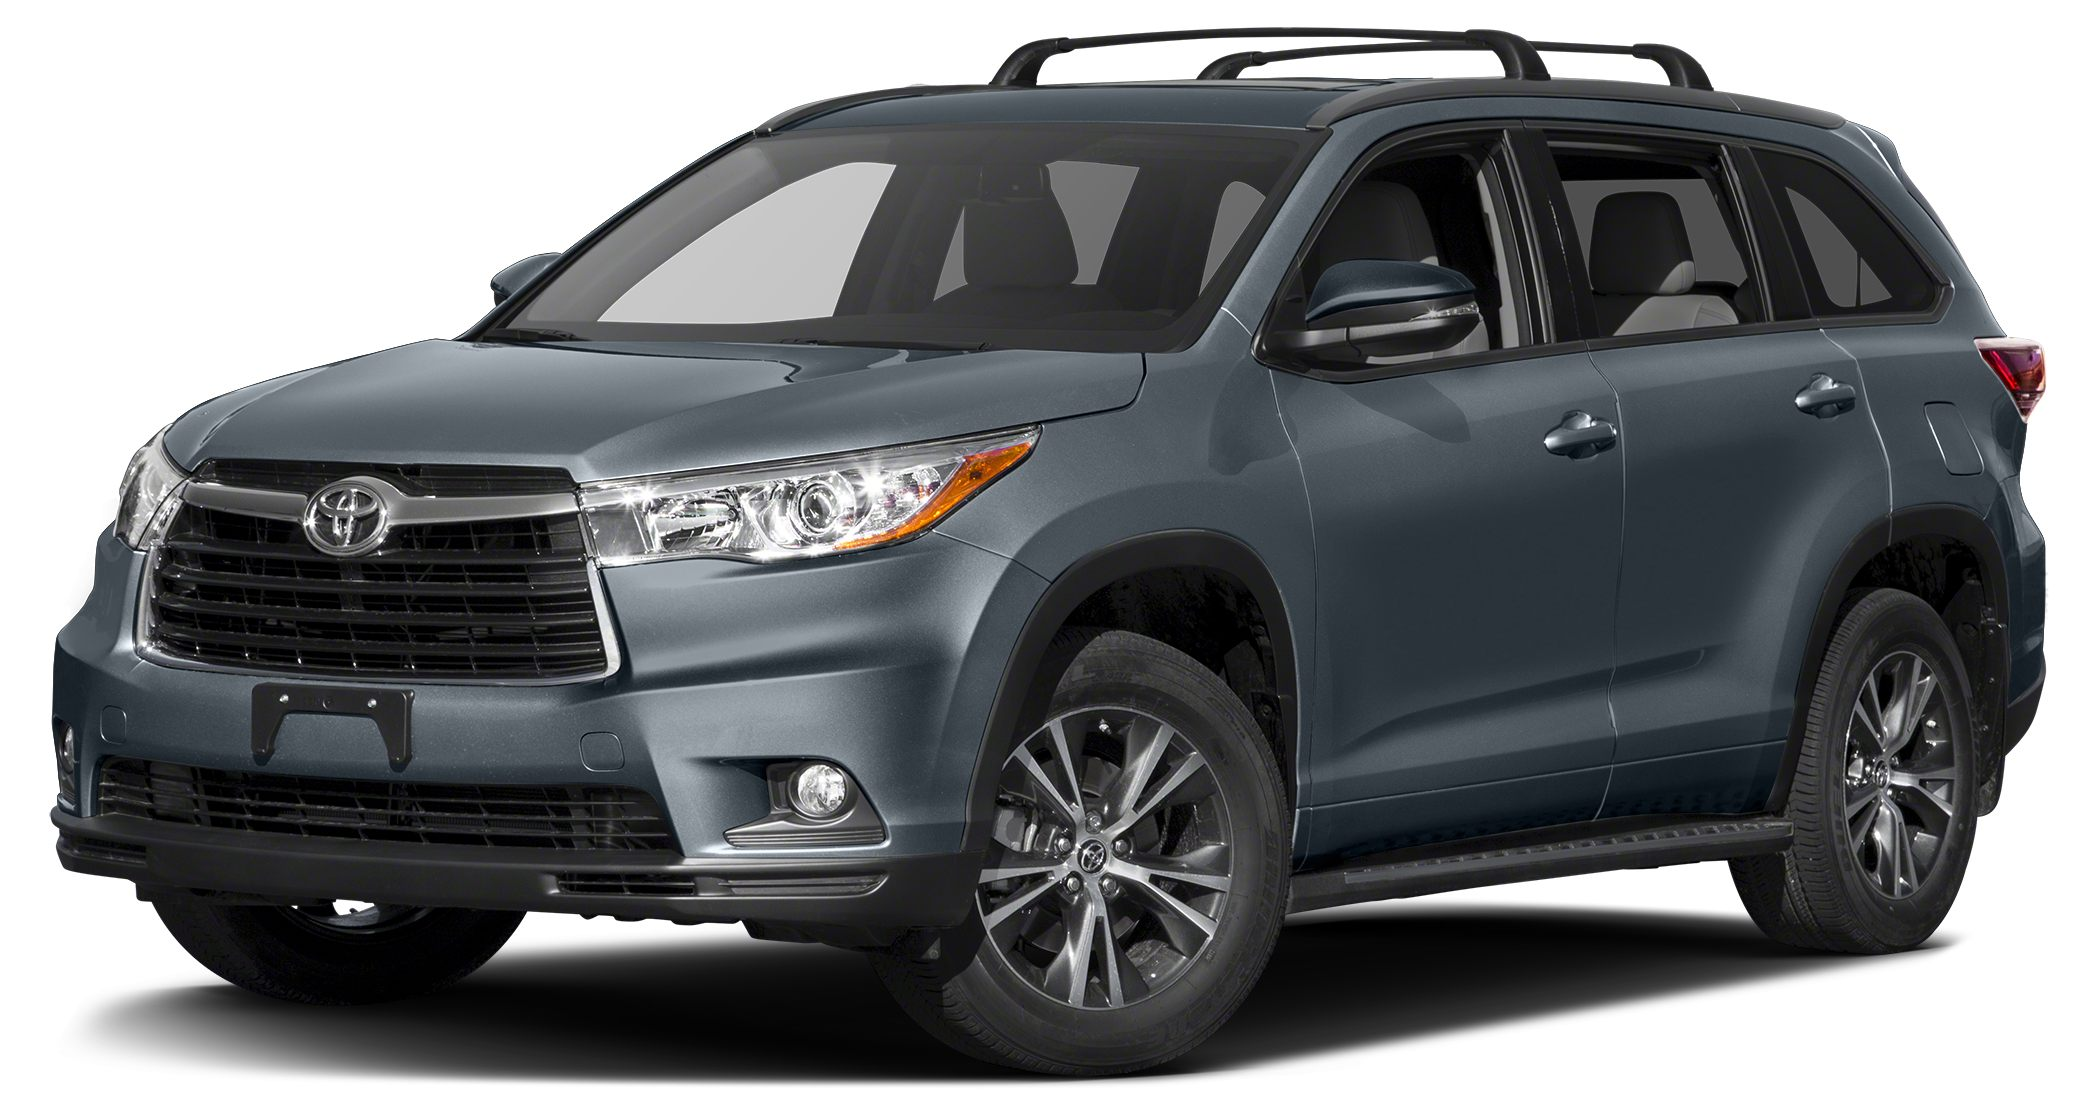 2016 Toyota Highlander XLE XLE trim ONLY 10901 Miles EPA 24 MPG Hwy18 MPG City Moonroof Nav